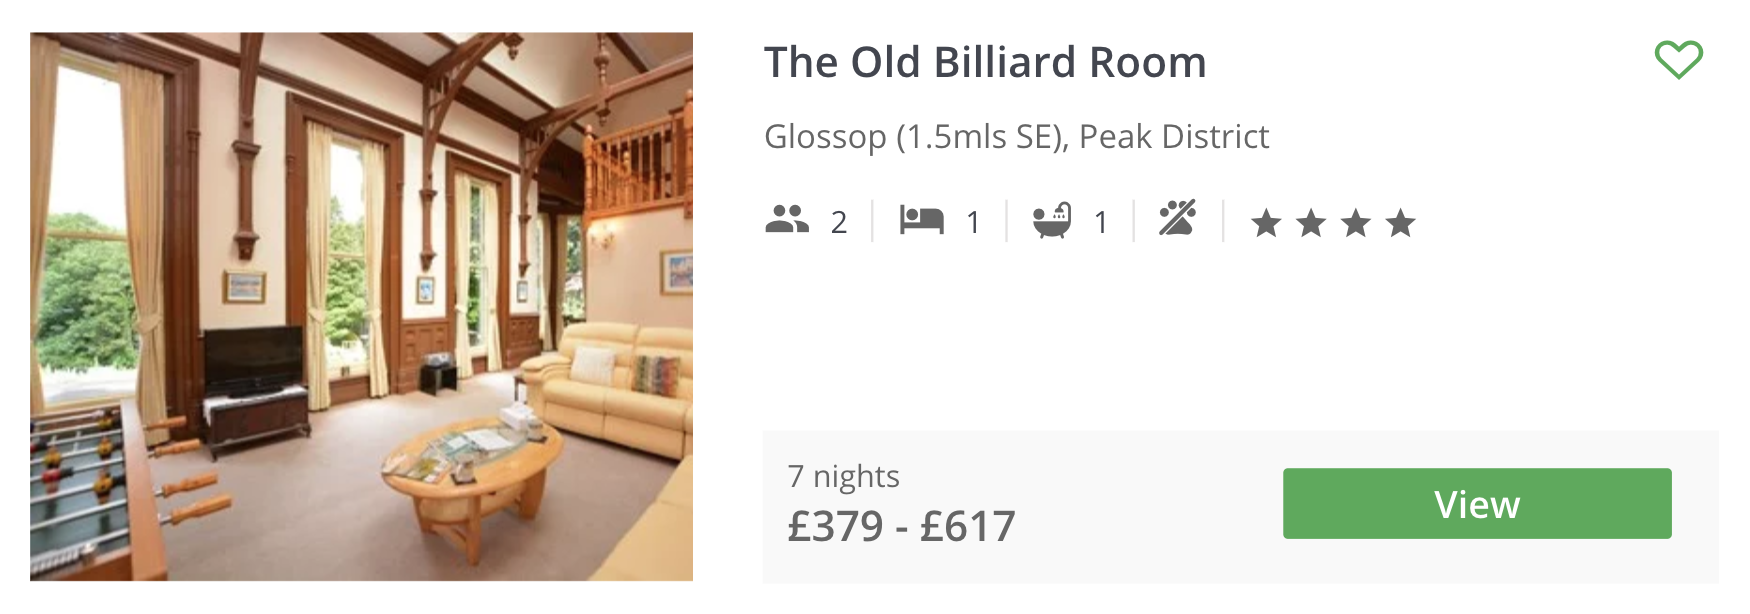 PEAK DISTRICT COTTAGE GUIDE - the old billiard room glossop